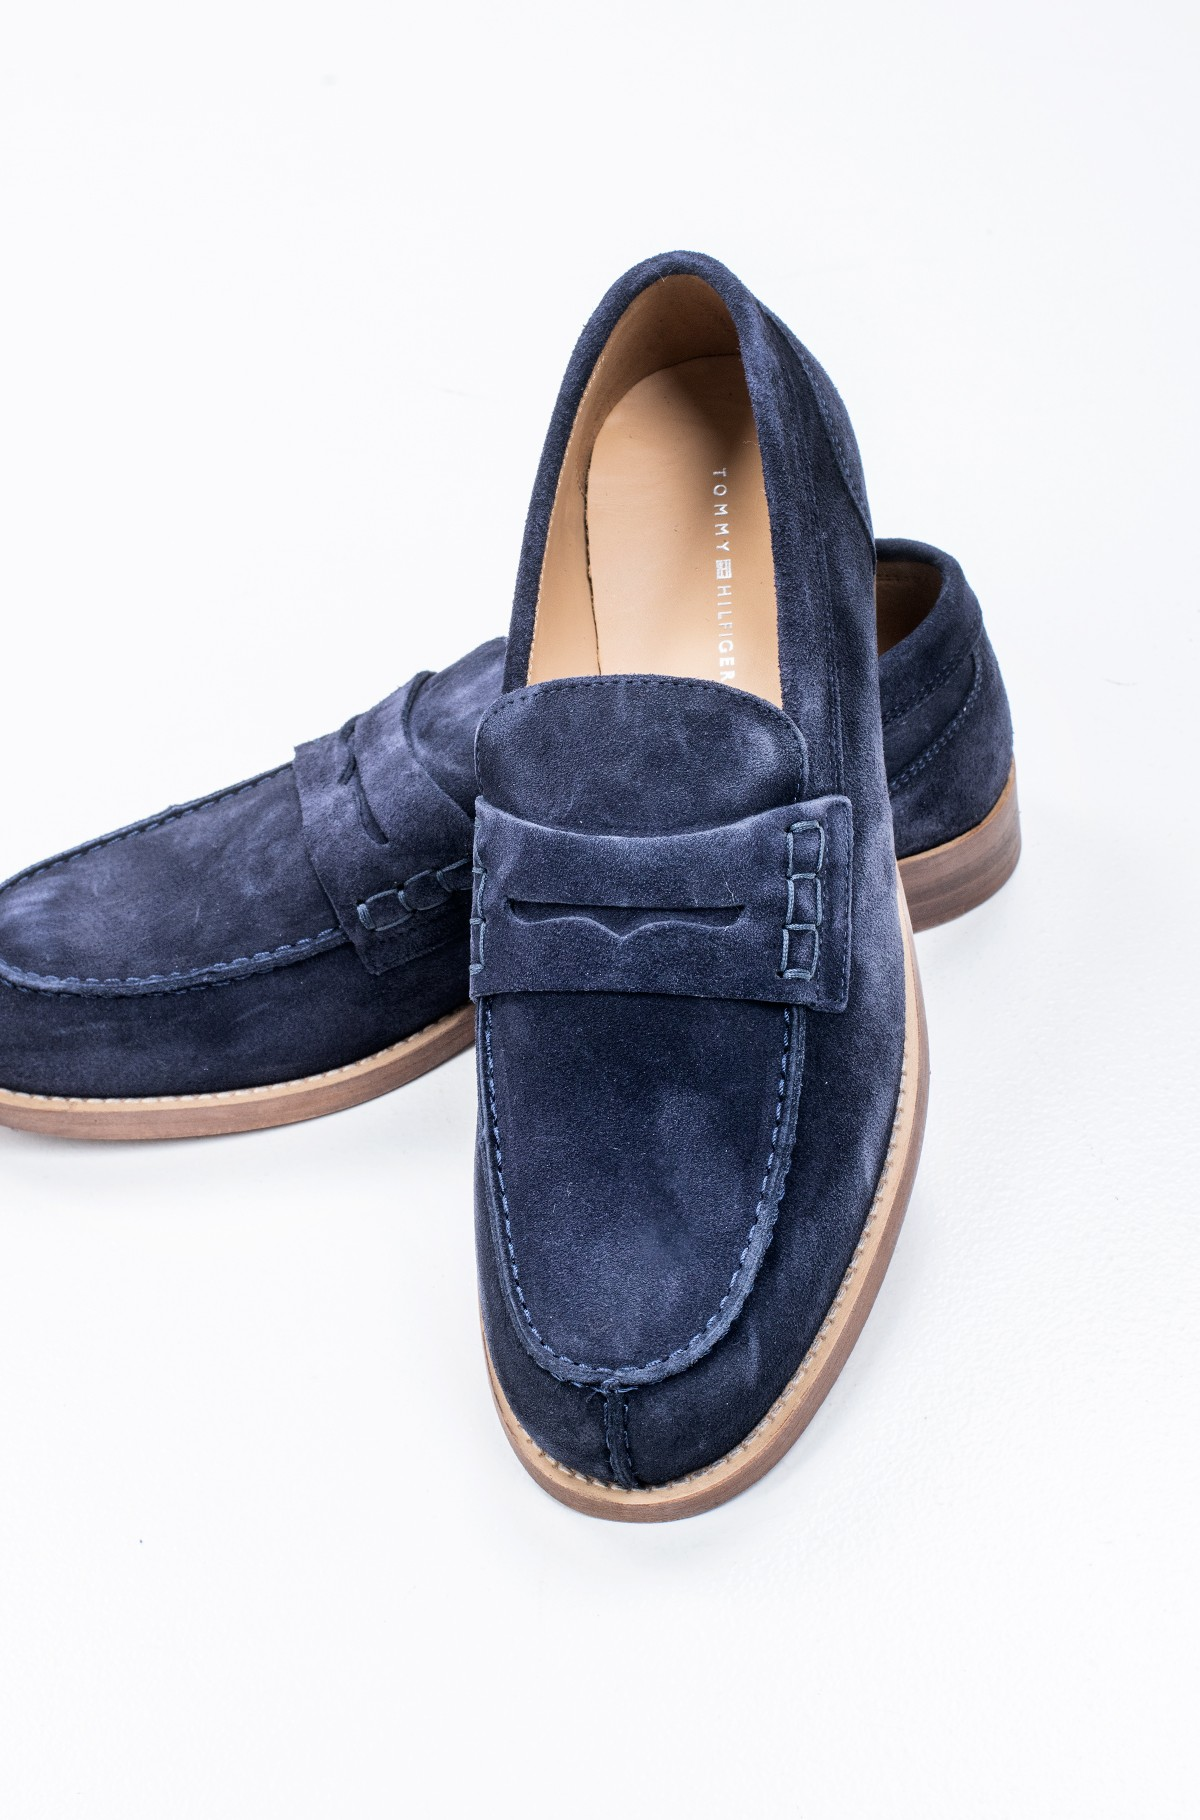 Kingad HILFIGER SUEDE LOAFER-full-2